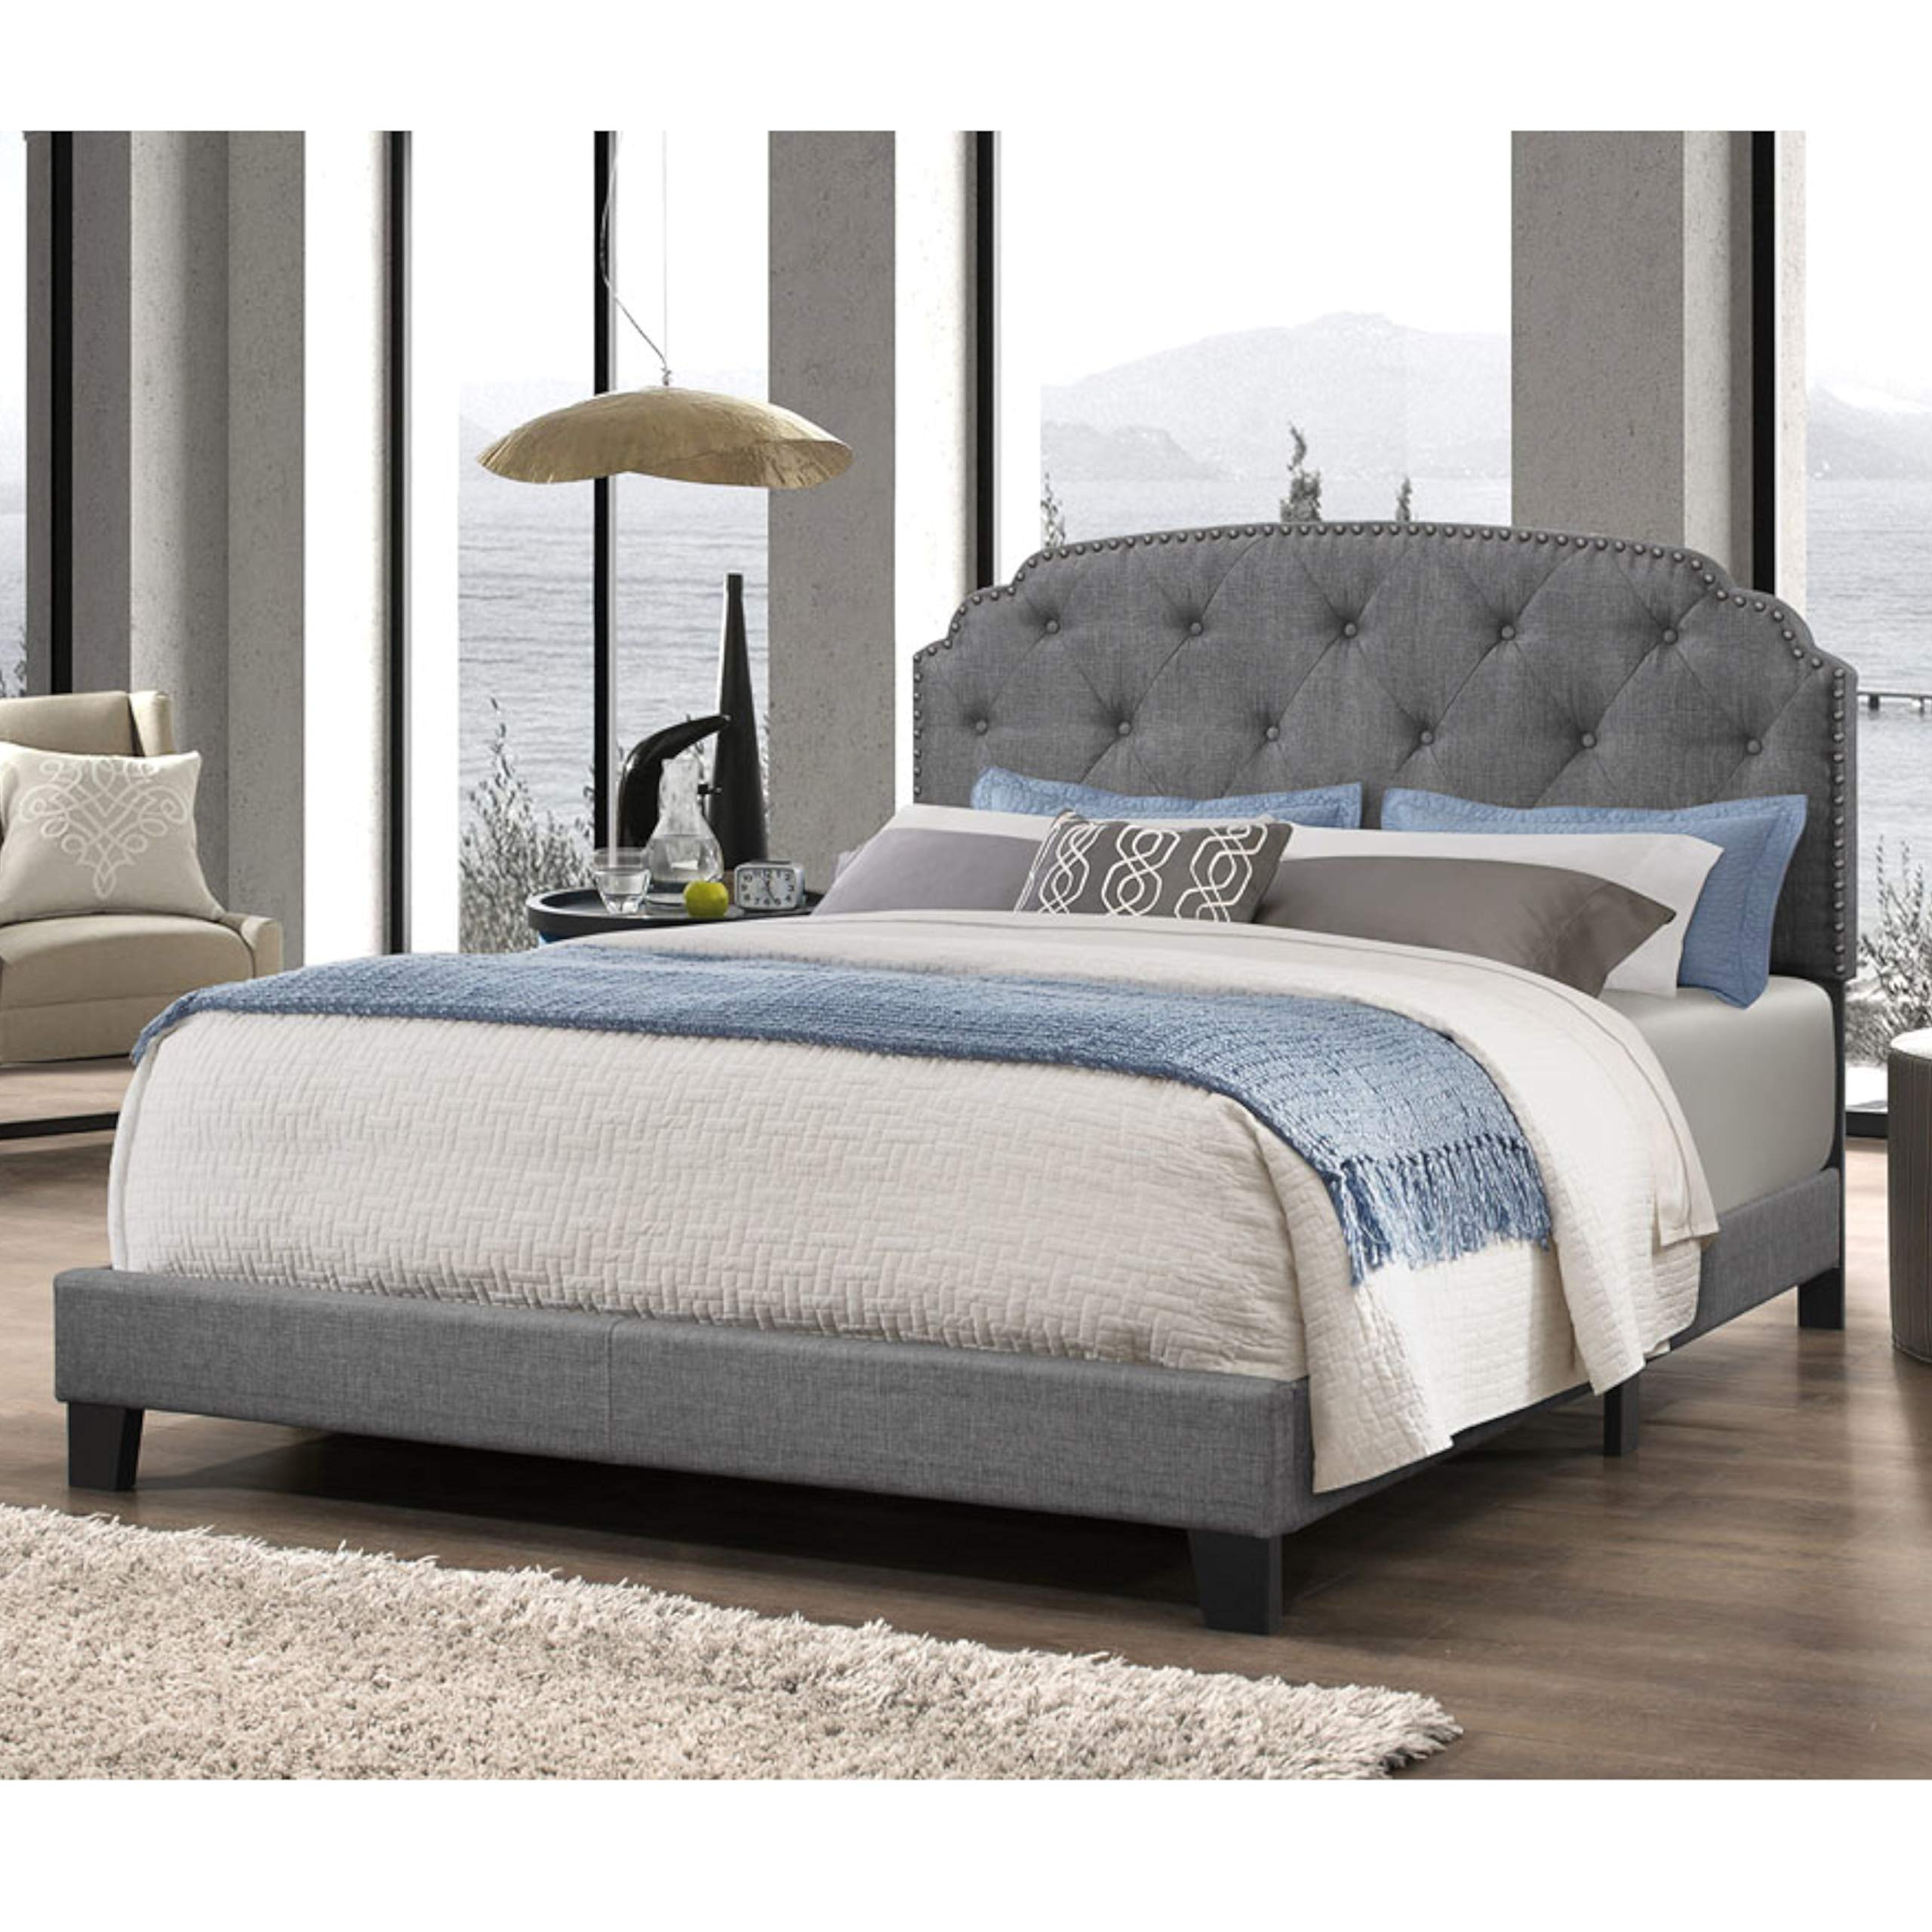 DG Casa 9850-Q-GRY Wembley Tufted Upholstered Panel Bed Frame with Nailhead Trim Headboard, Queen Size in Grey Fabric